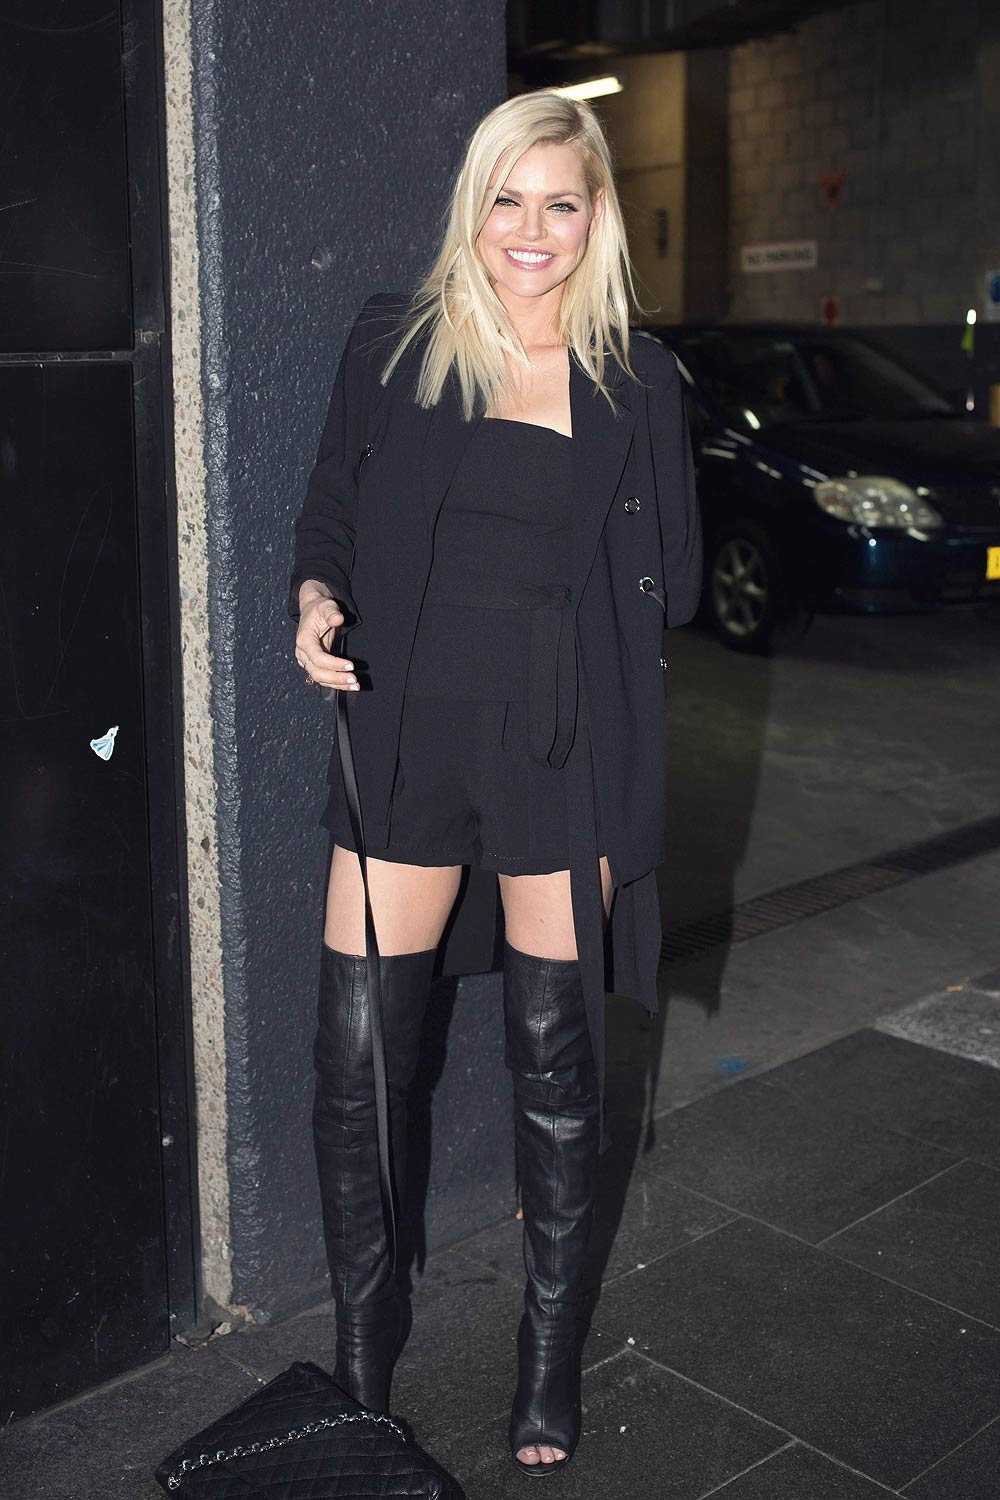 Sophie Monk at an event in Sydney